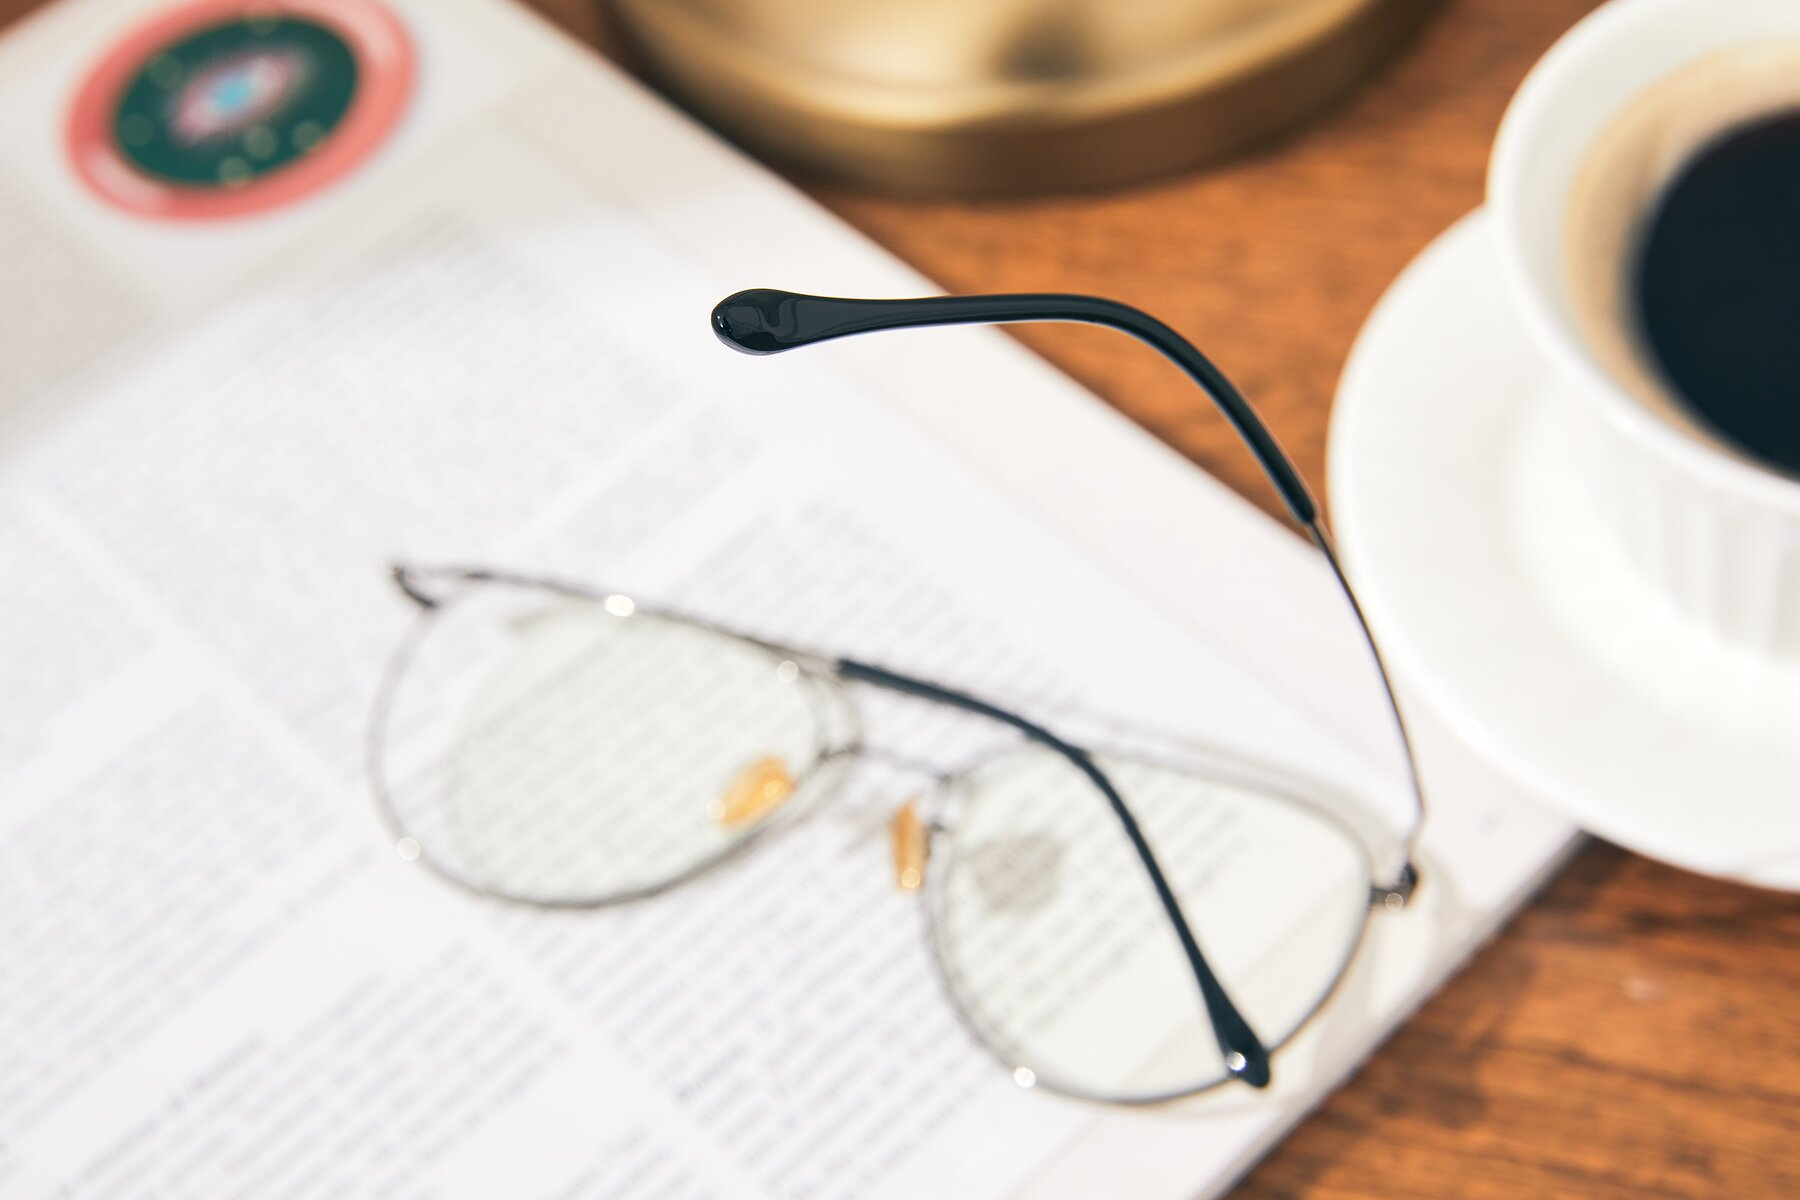 Lifestyle photography #3 of 80060 in Gun with Clear Eyeglass Lenses